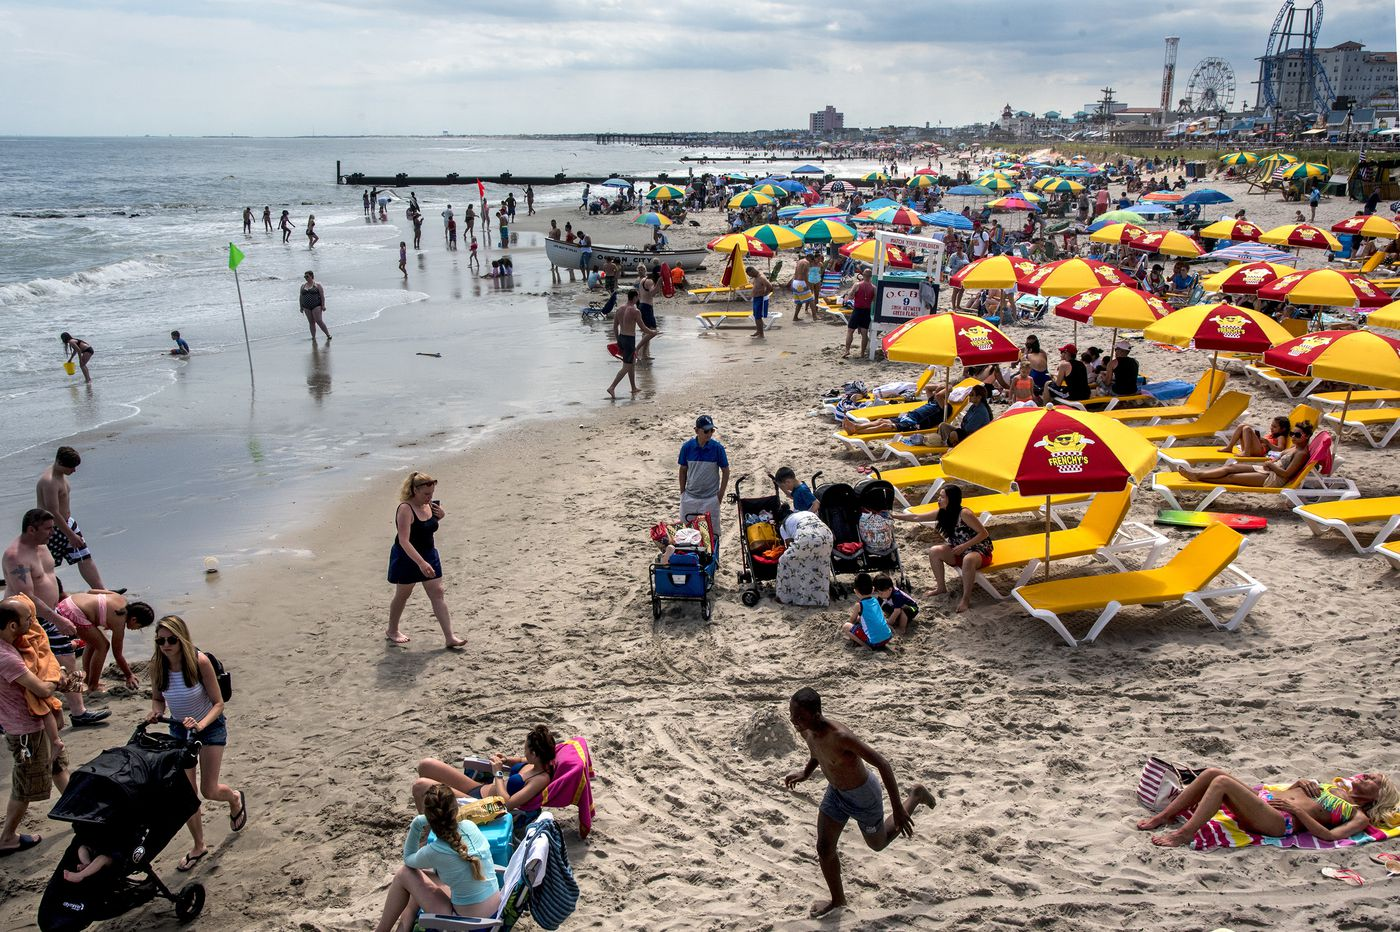 Are you a Jersey Shore expert? Prove it. Share your best beach hacks.